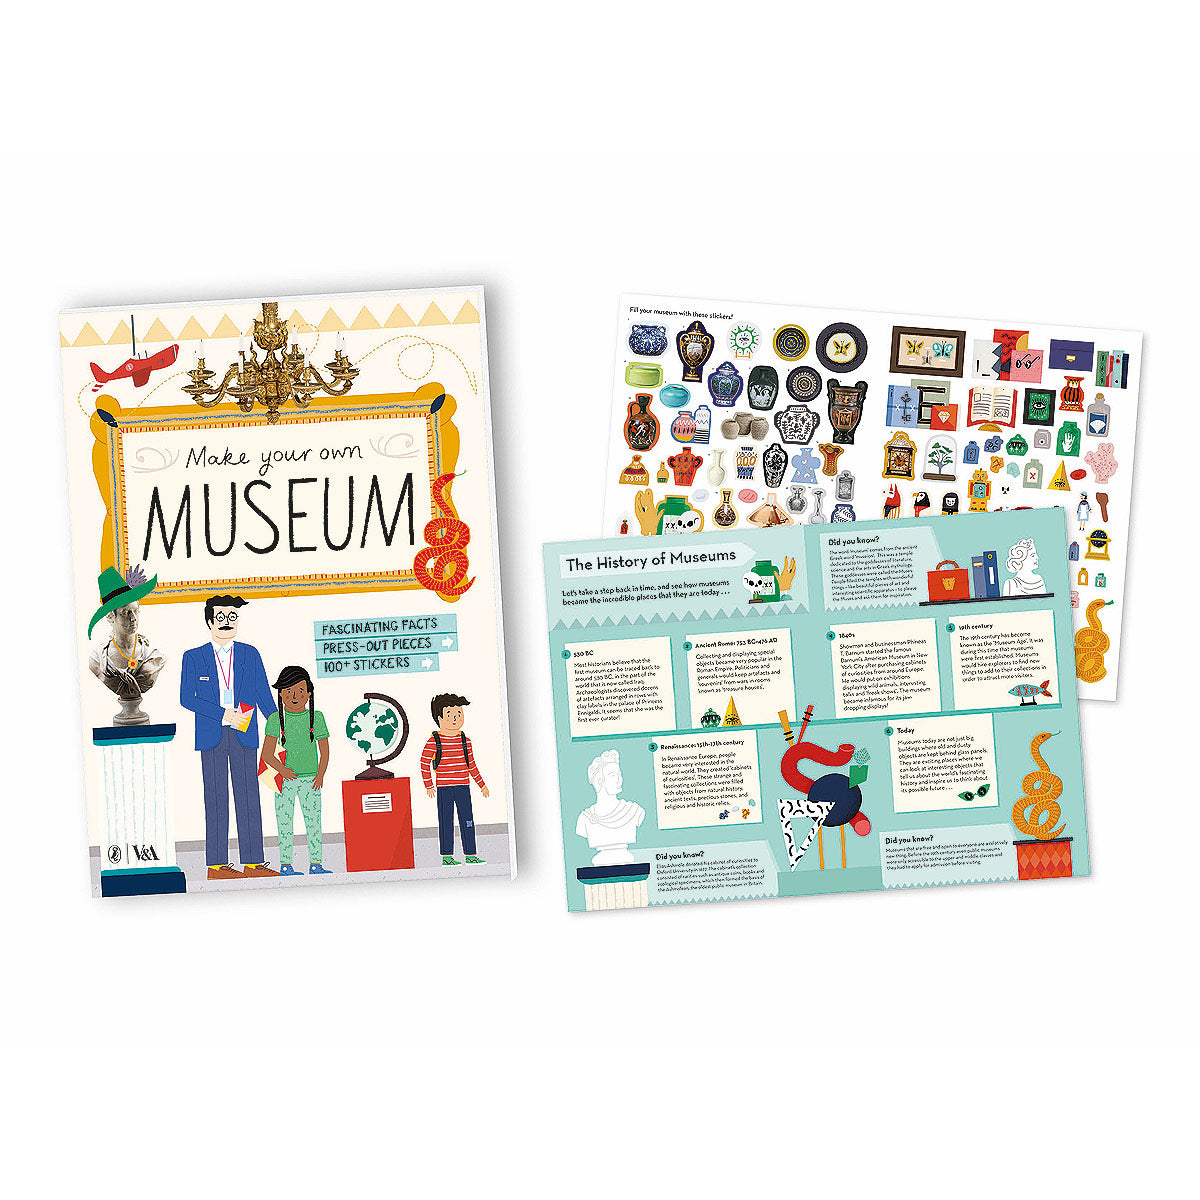 Welcome to the Museum Fold Out Book